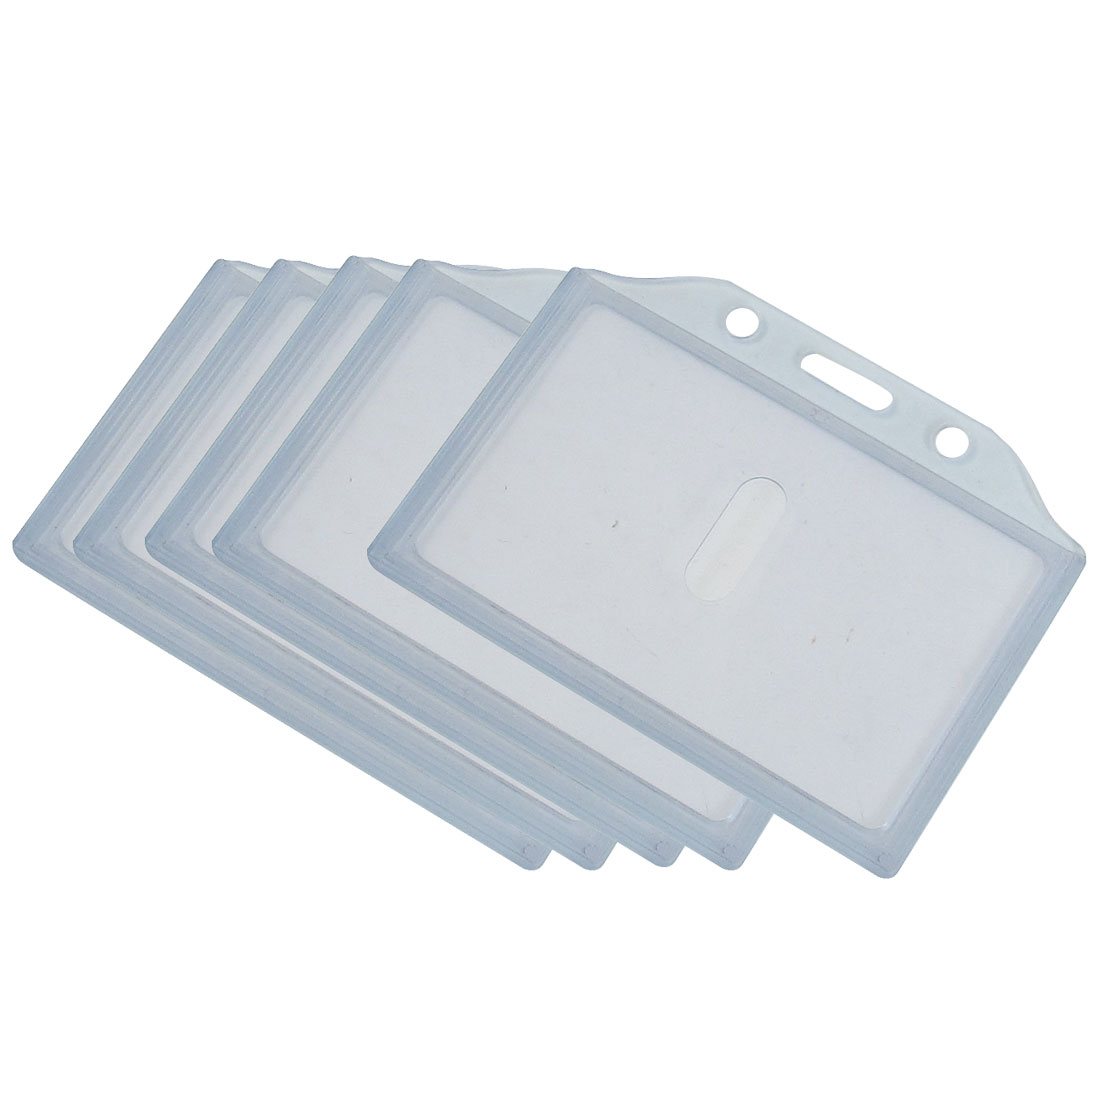 Office School Clear Gray Plastic Horizontal Business ID Badge Card Holder 5 Pcs